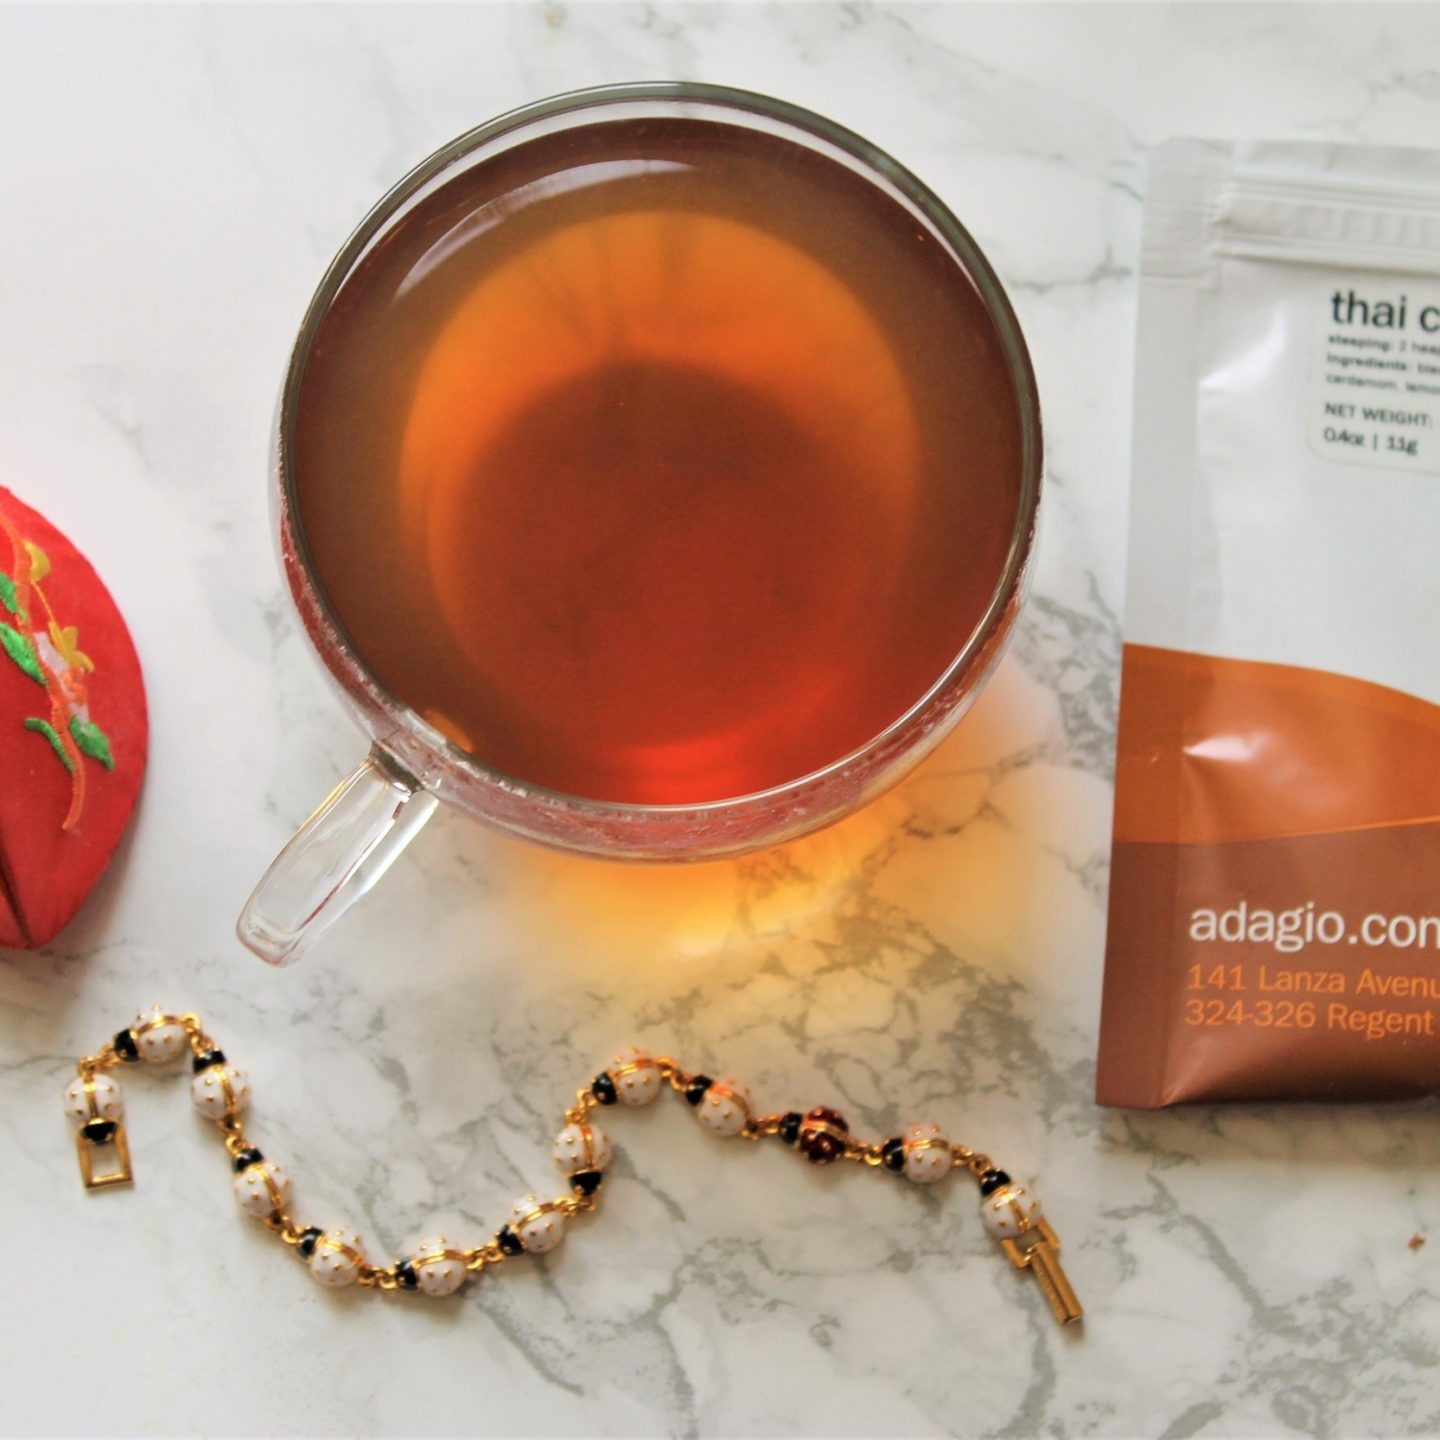 Adagio Thai Chai Tea Review